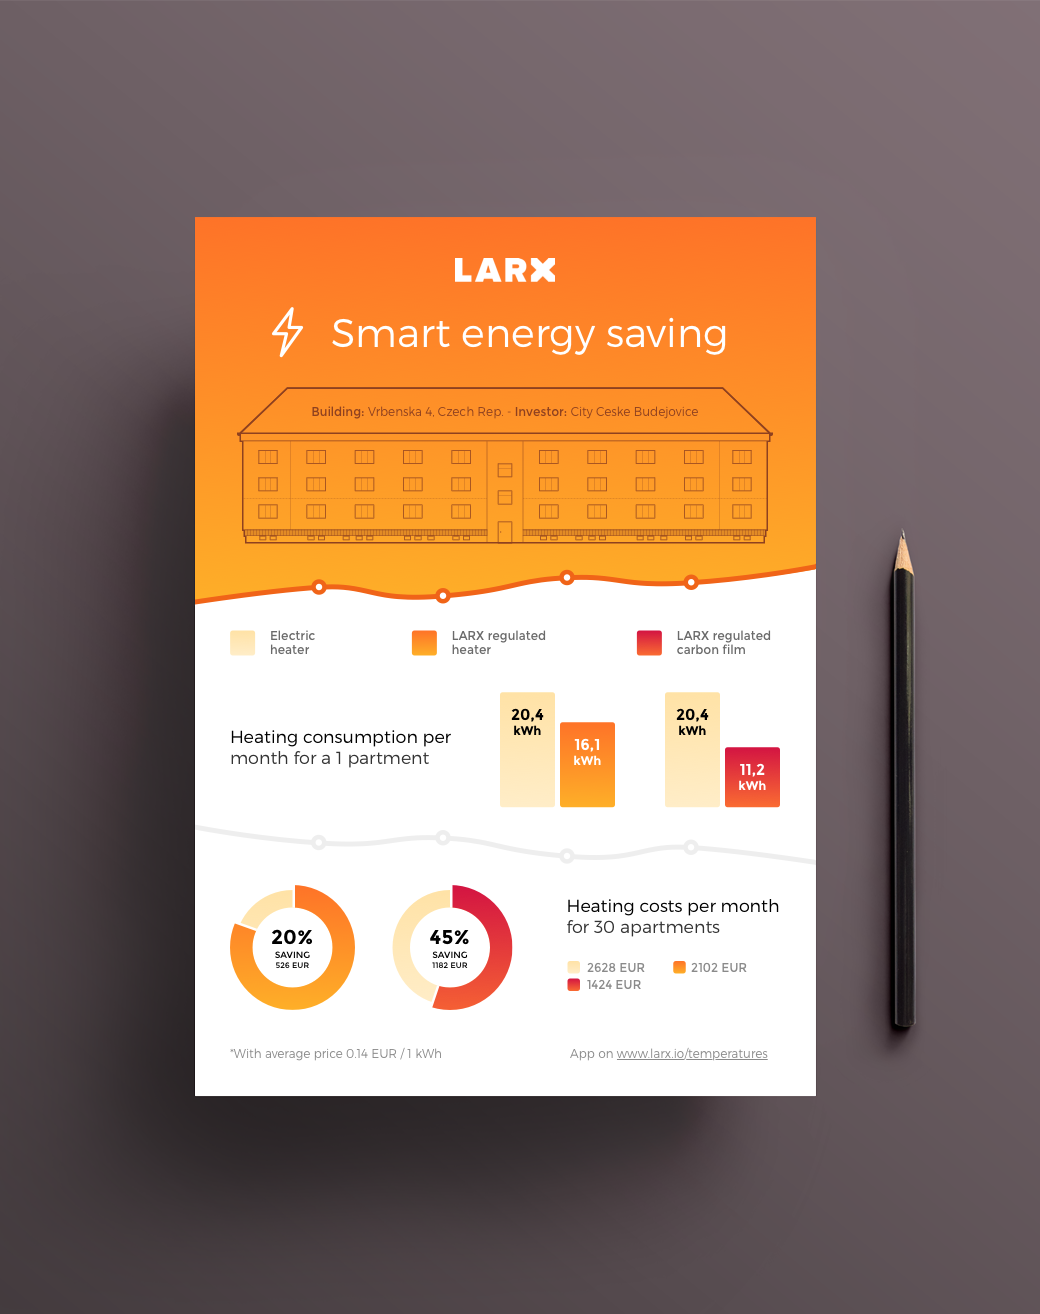 LARX Smart Energy Saving